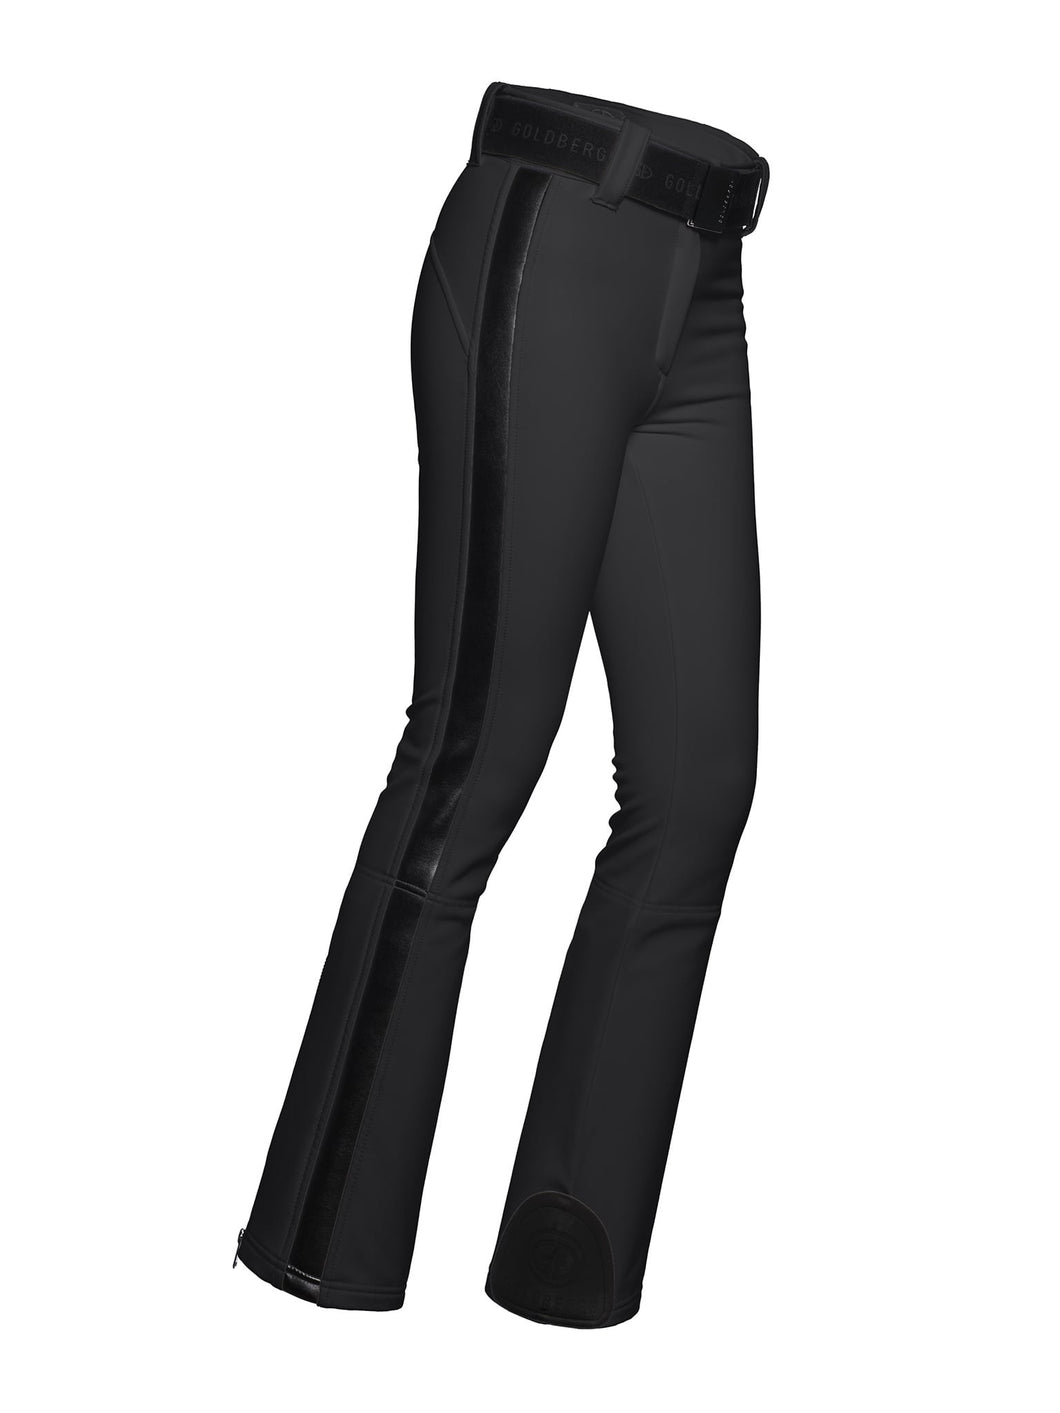 PALOMA pants W SIDE STRIPS – BLACK